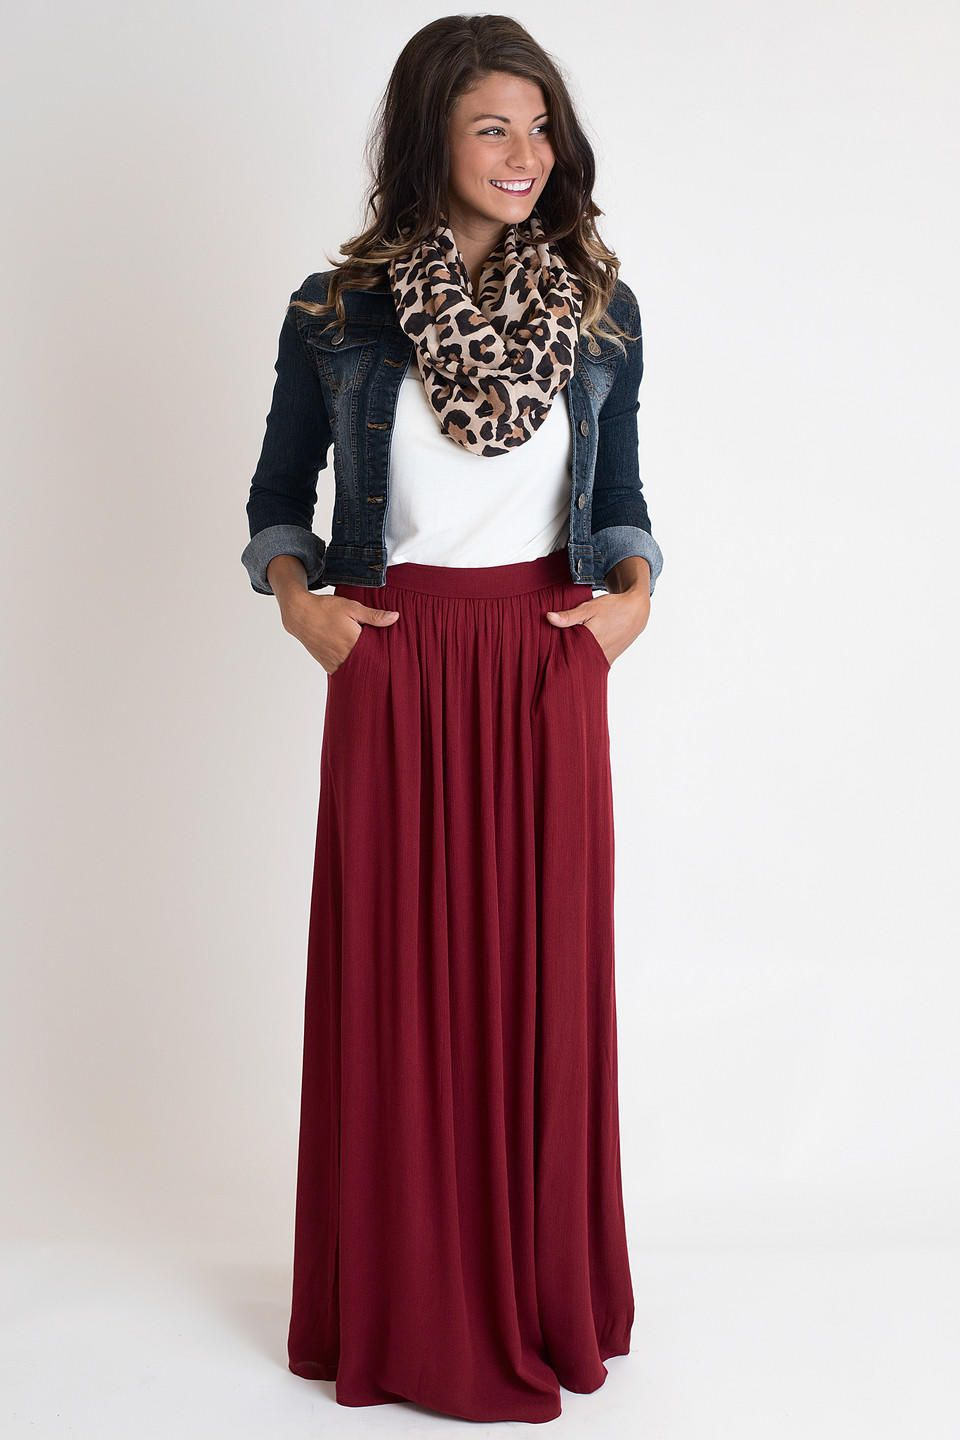 Tricks Or Treat Burgundy Maxi Skirt from Single Thread Boutique ...